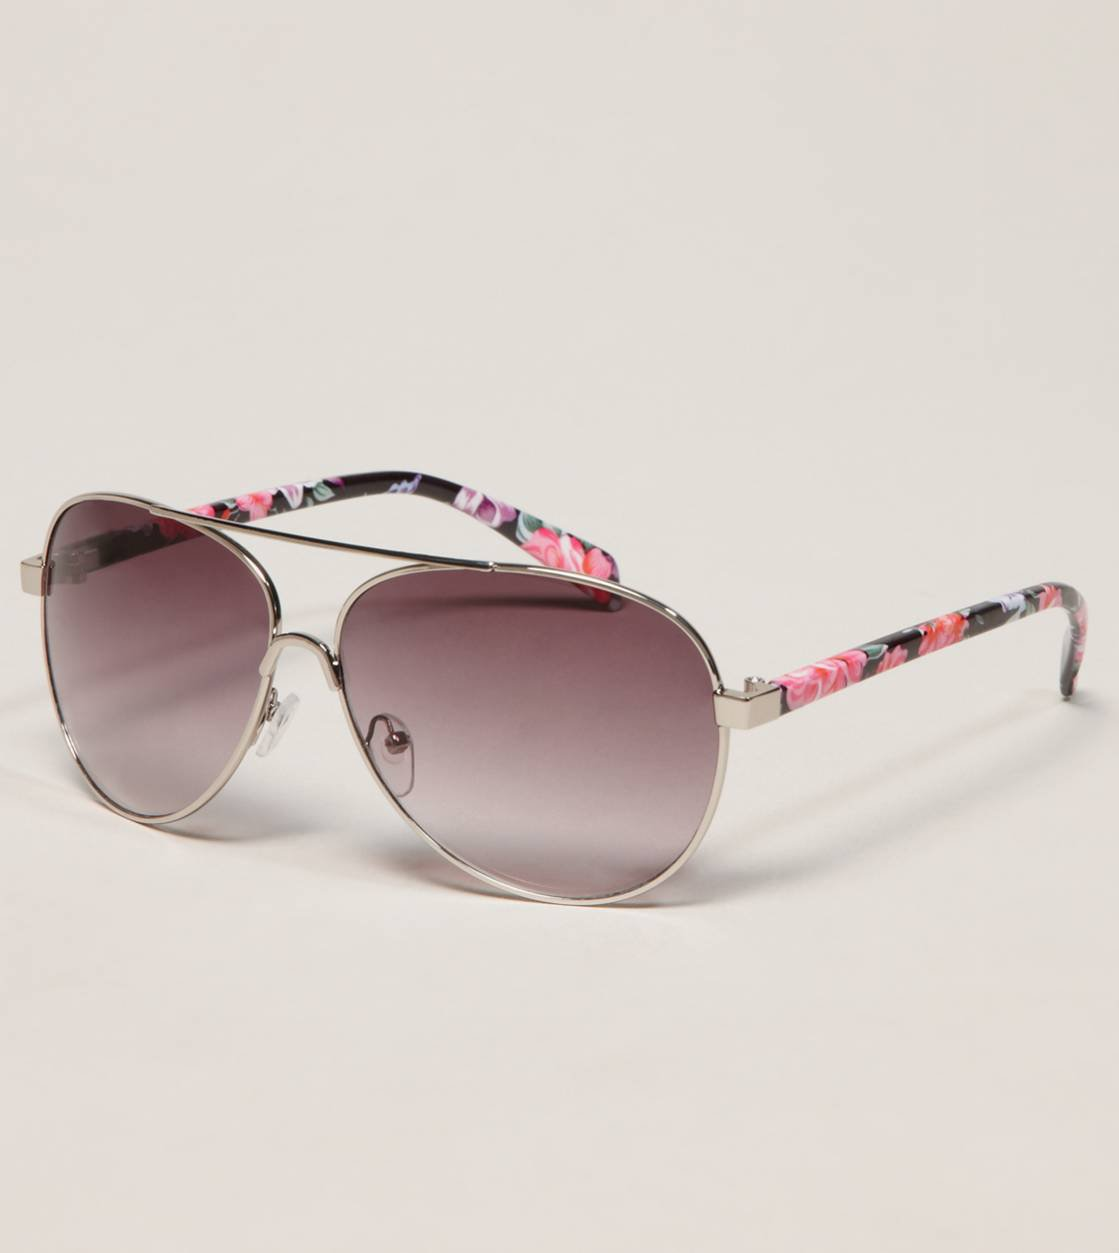 ae floral aviator sunglasses american from american eagle